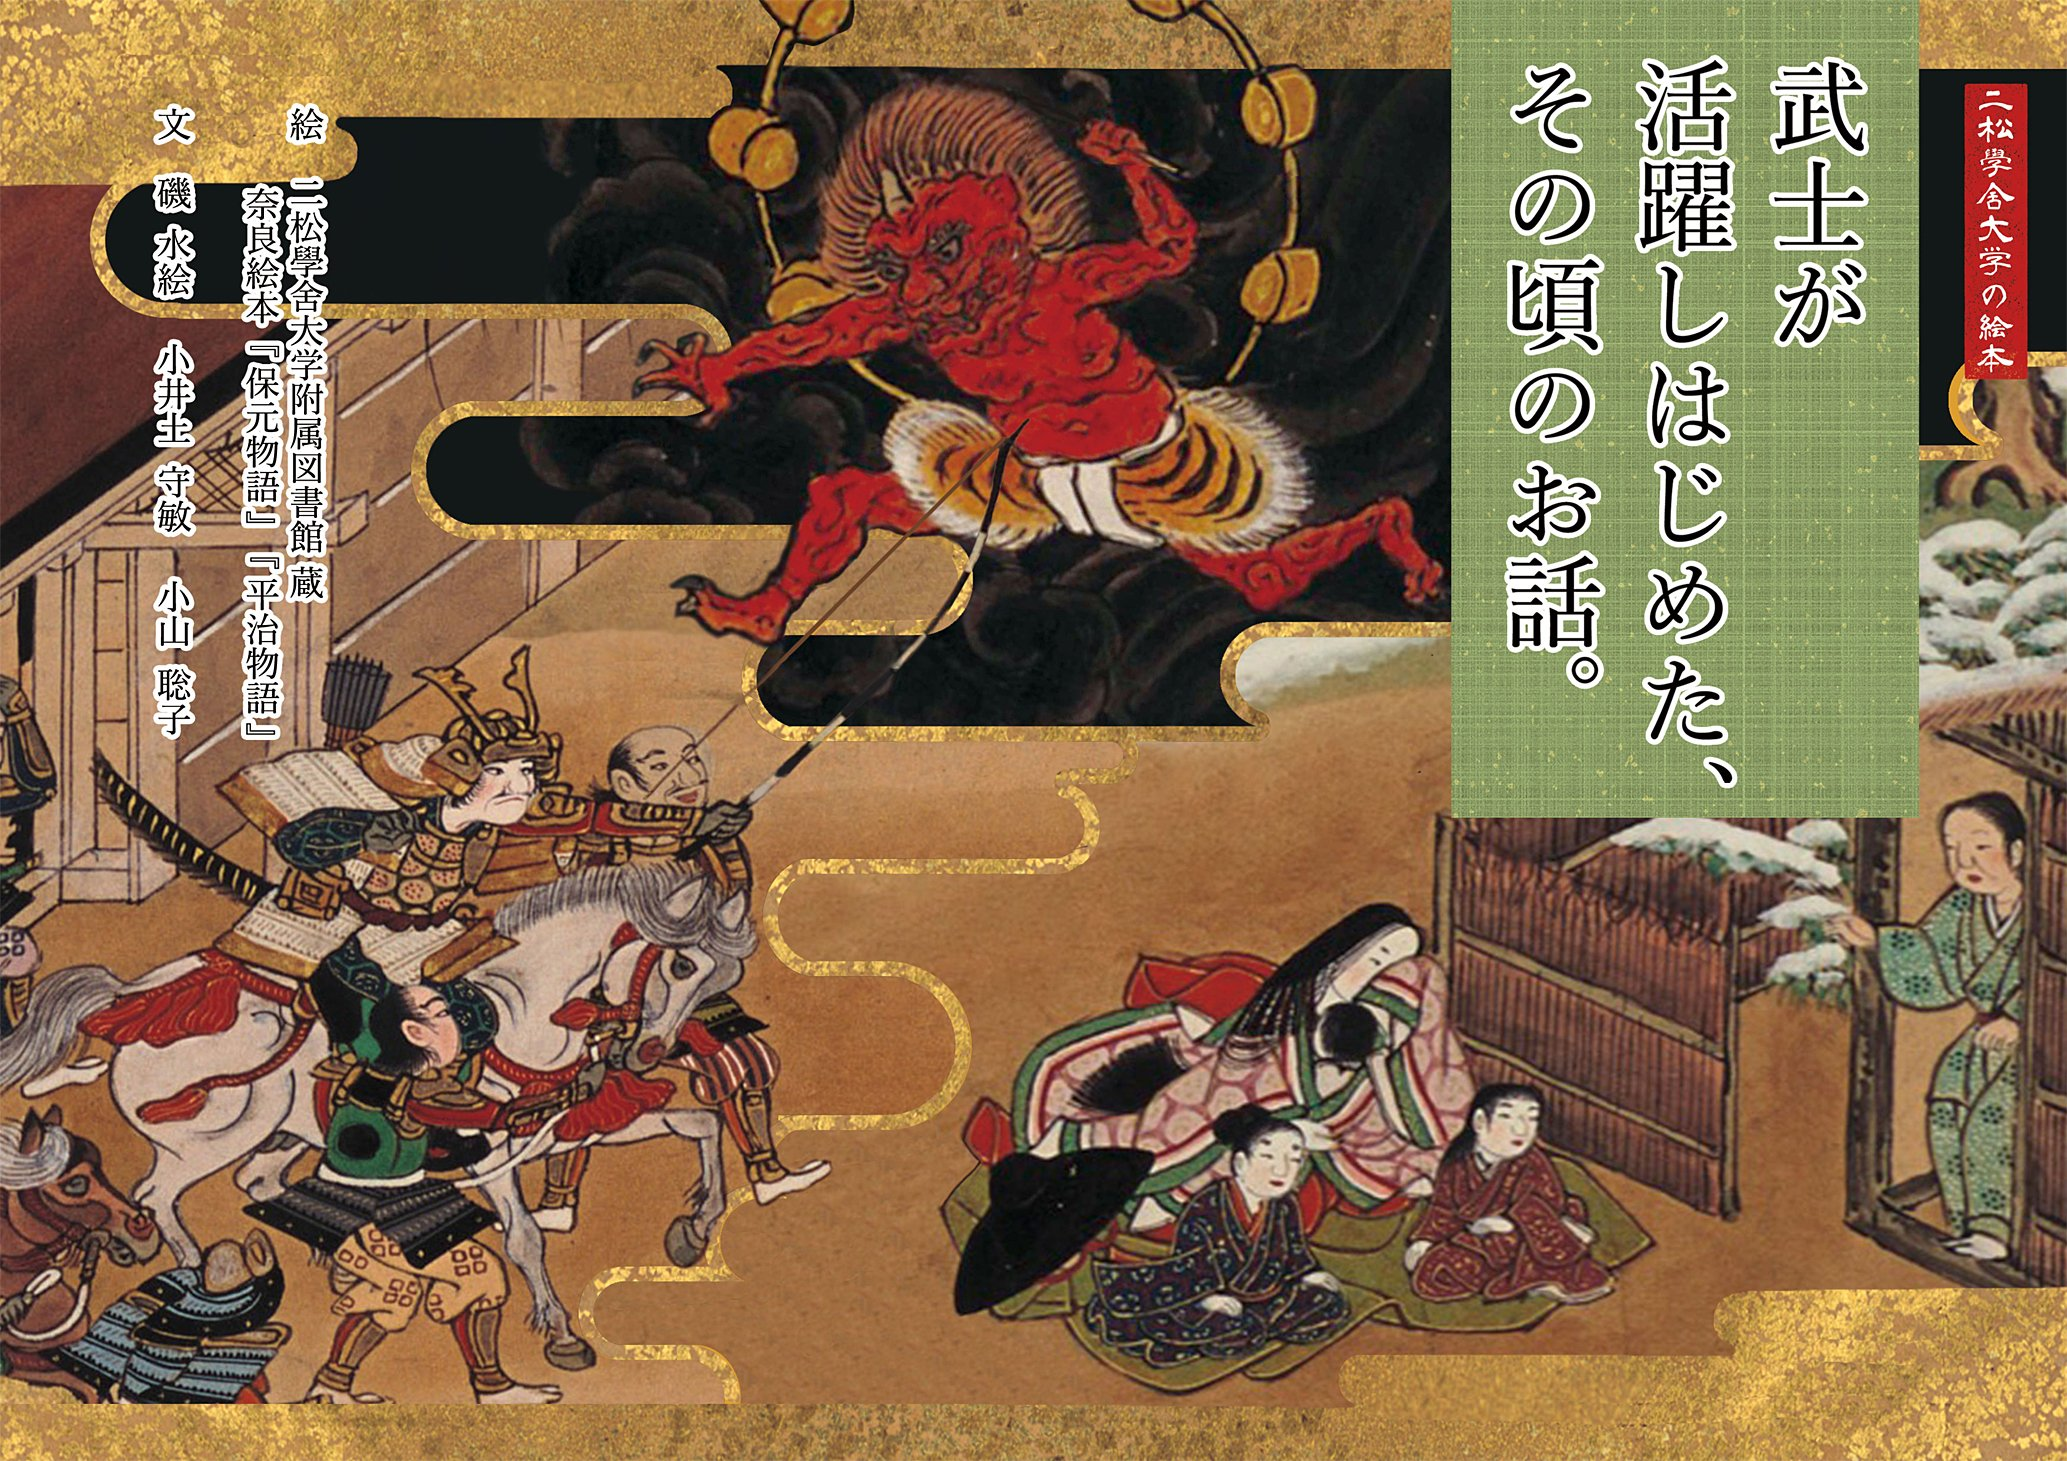 The story of warriors, began to flourish in those days. pdf